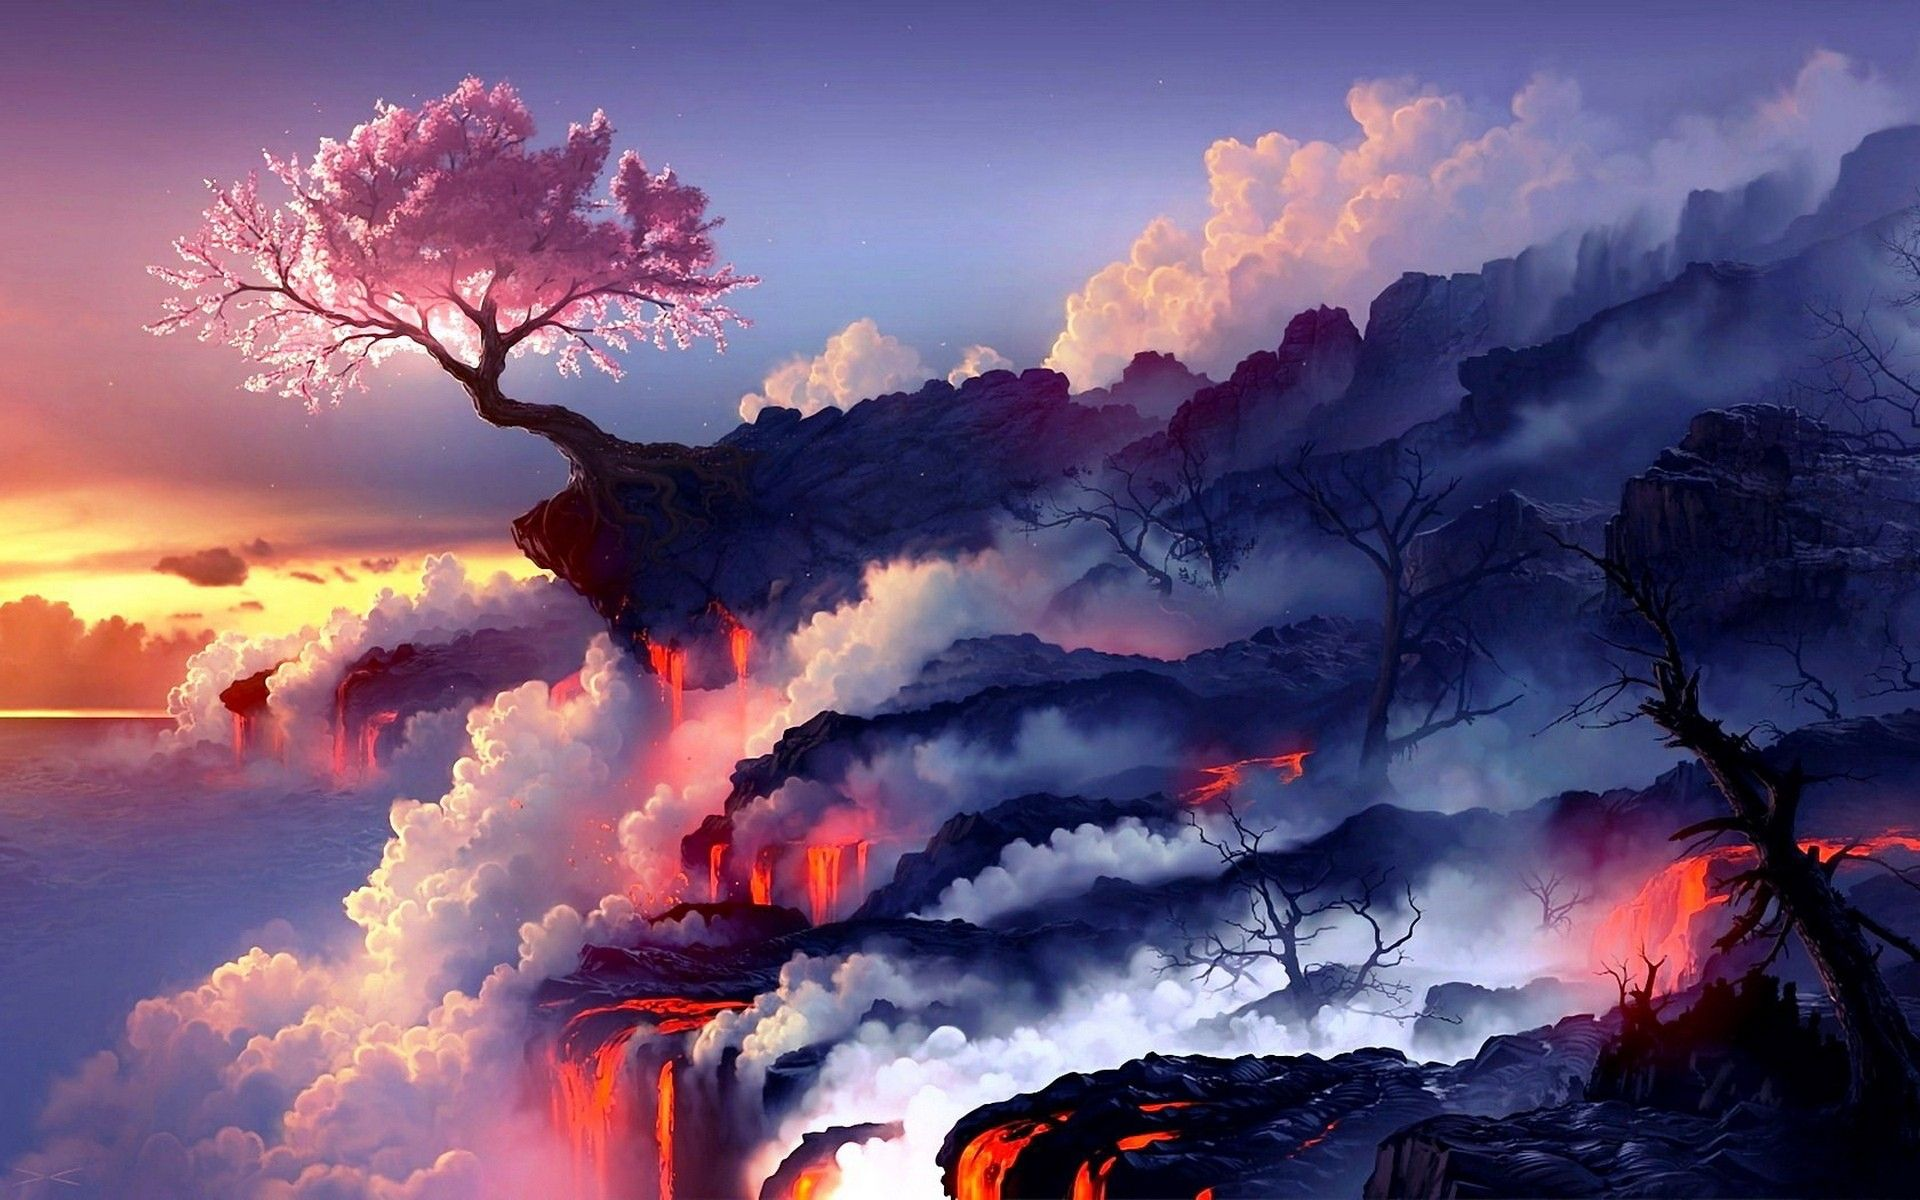 Japanese Cherry Blossom Cherry blossoms and lava